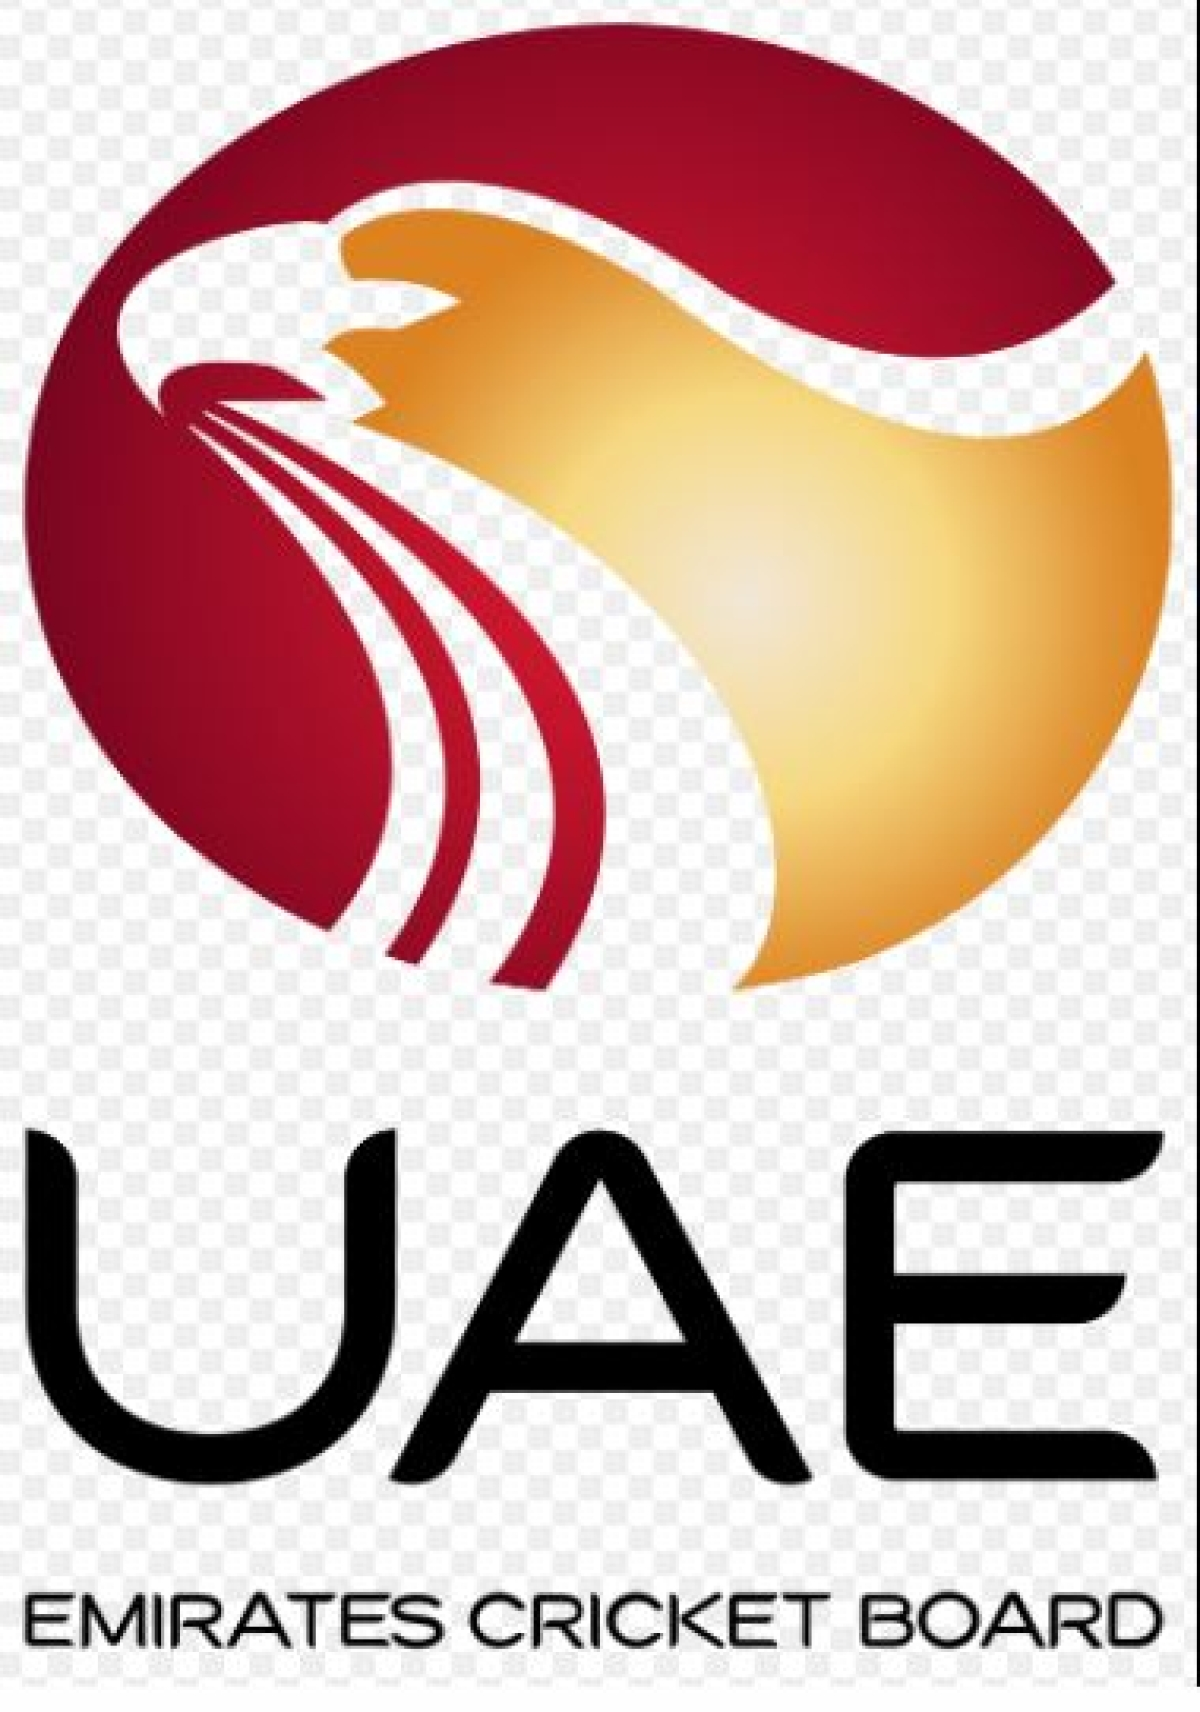 UAE confirms offer to host IPL: Report Press Trust of India